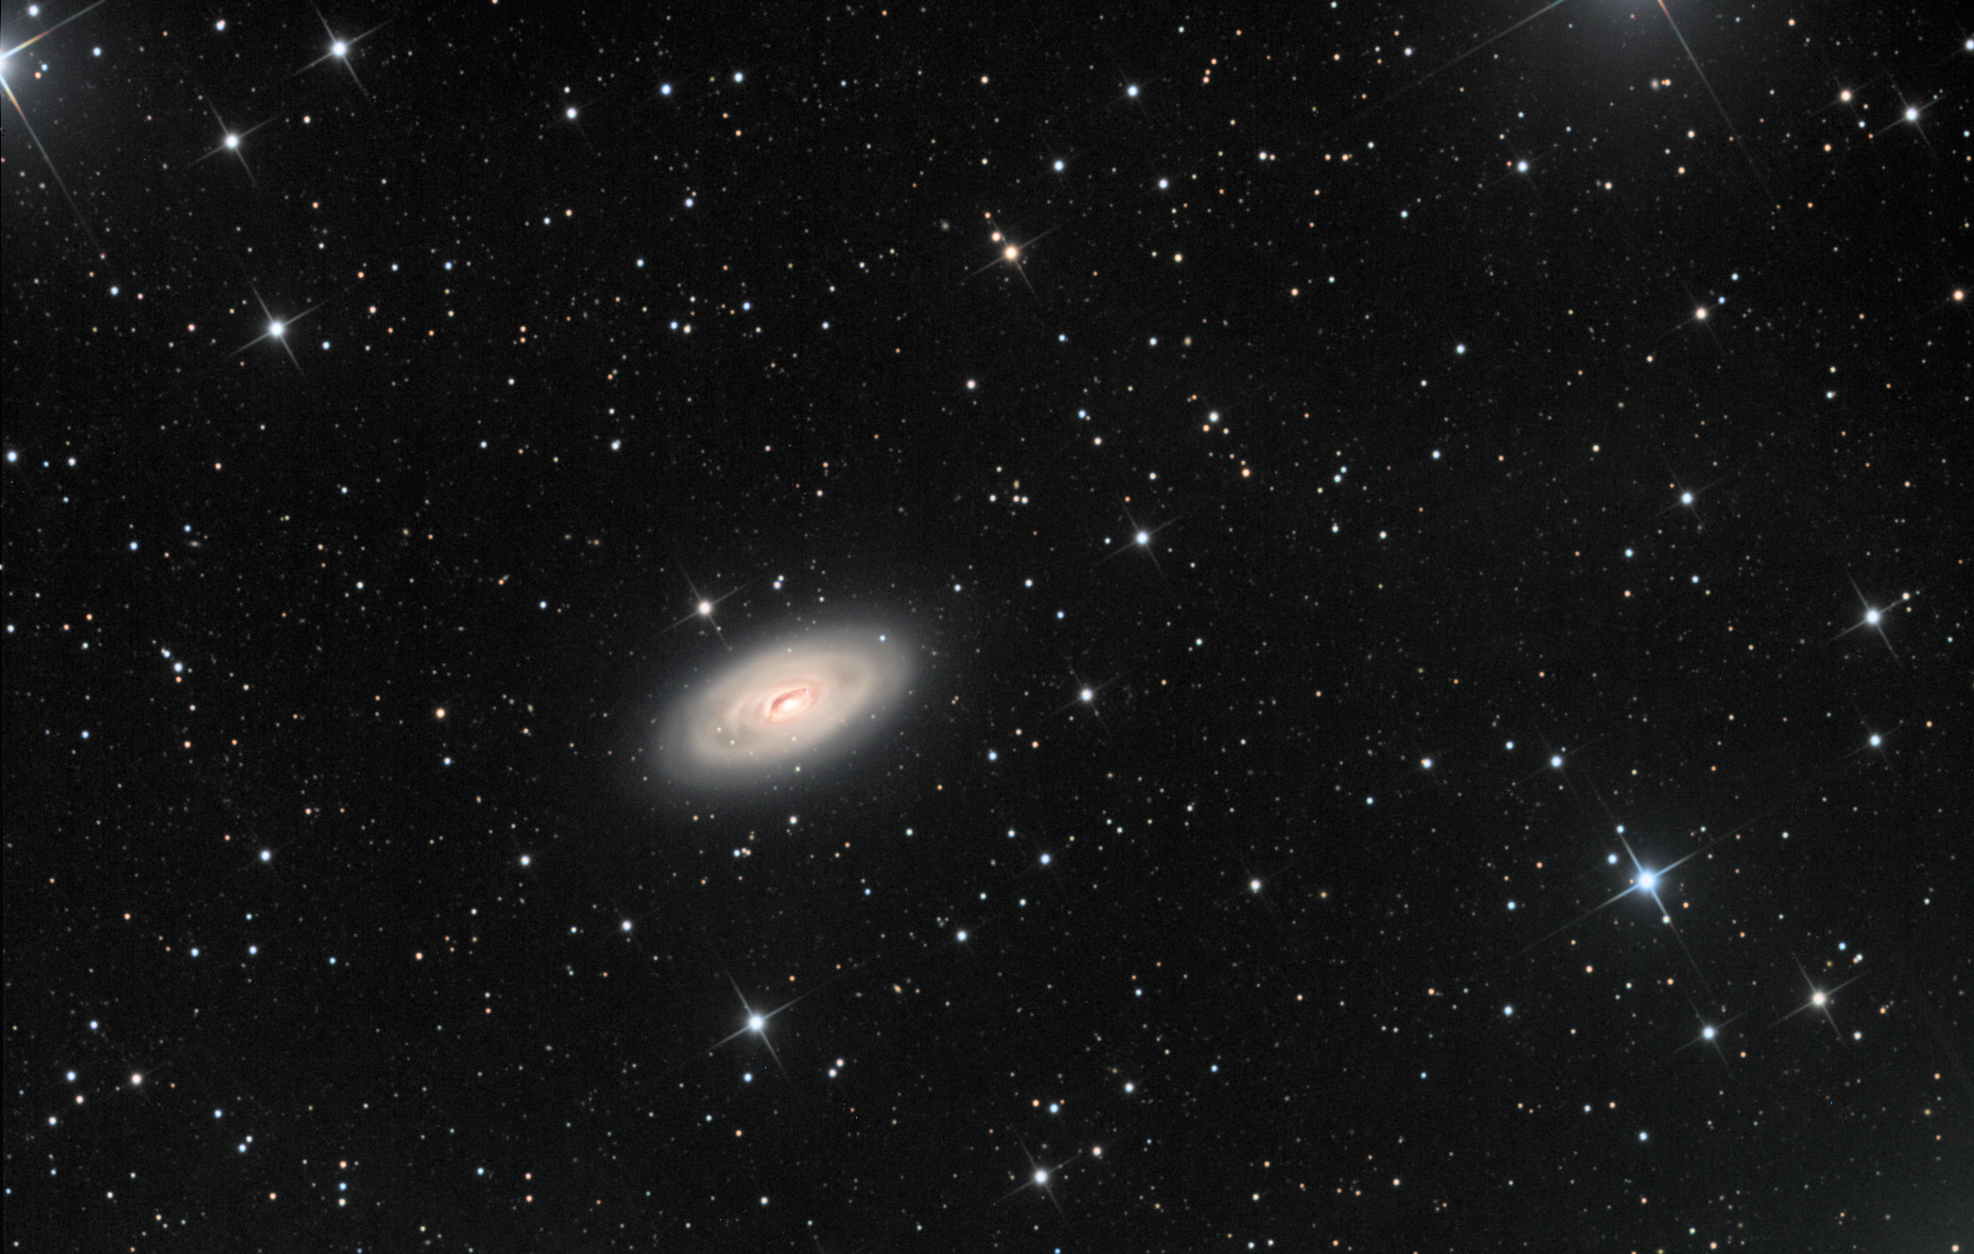 M 64 Galaxy in Coma Berenices